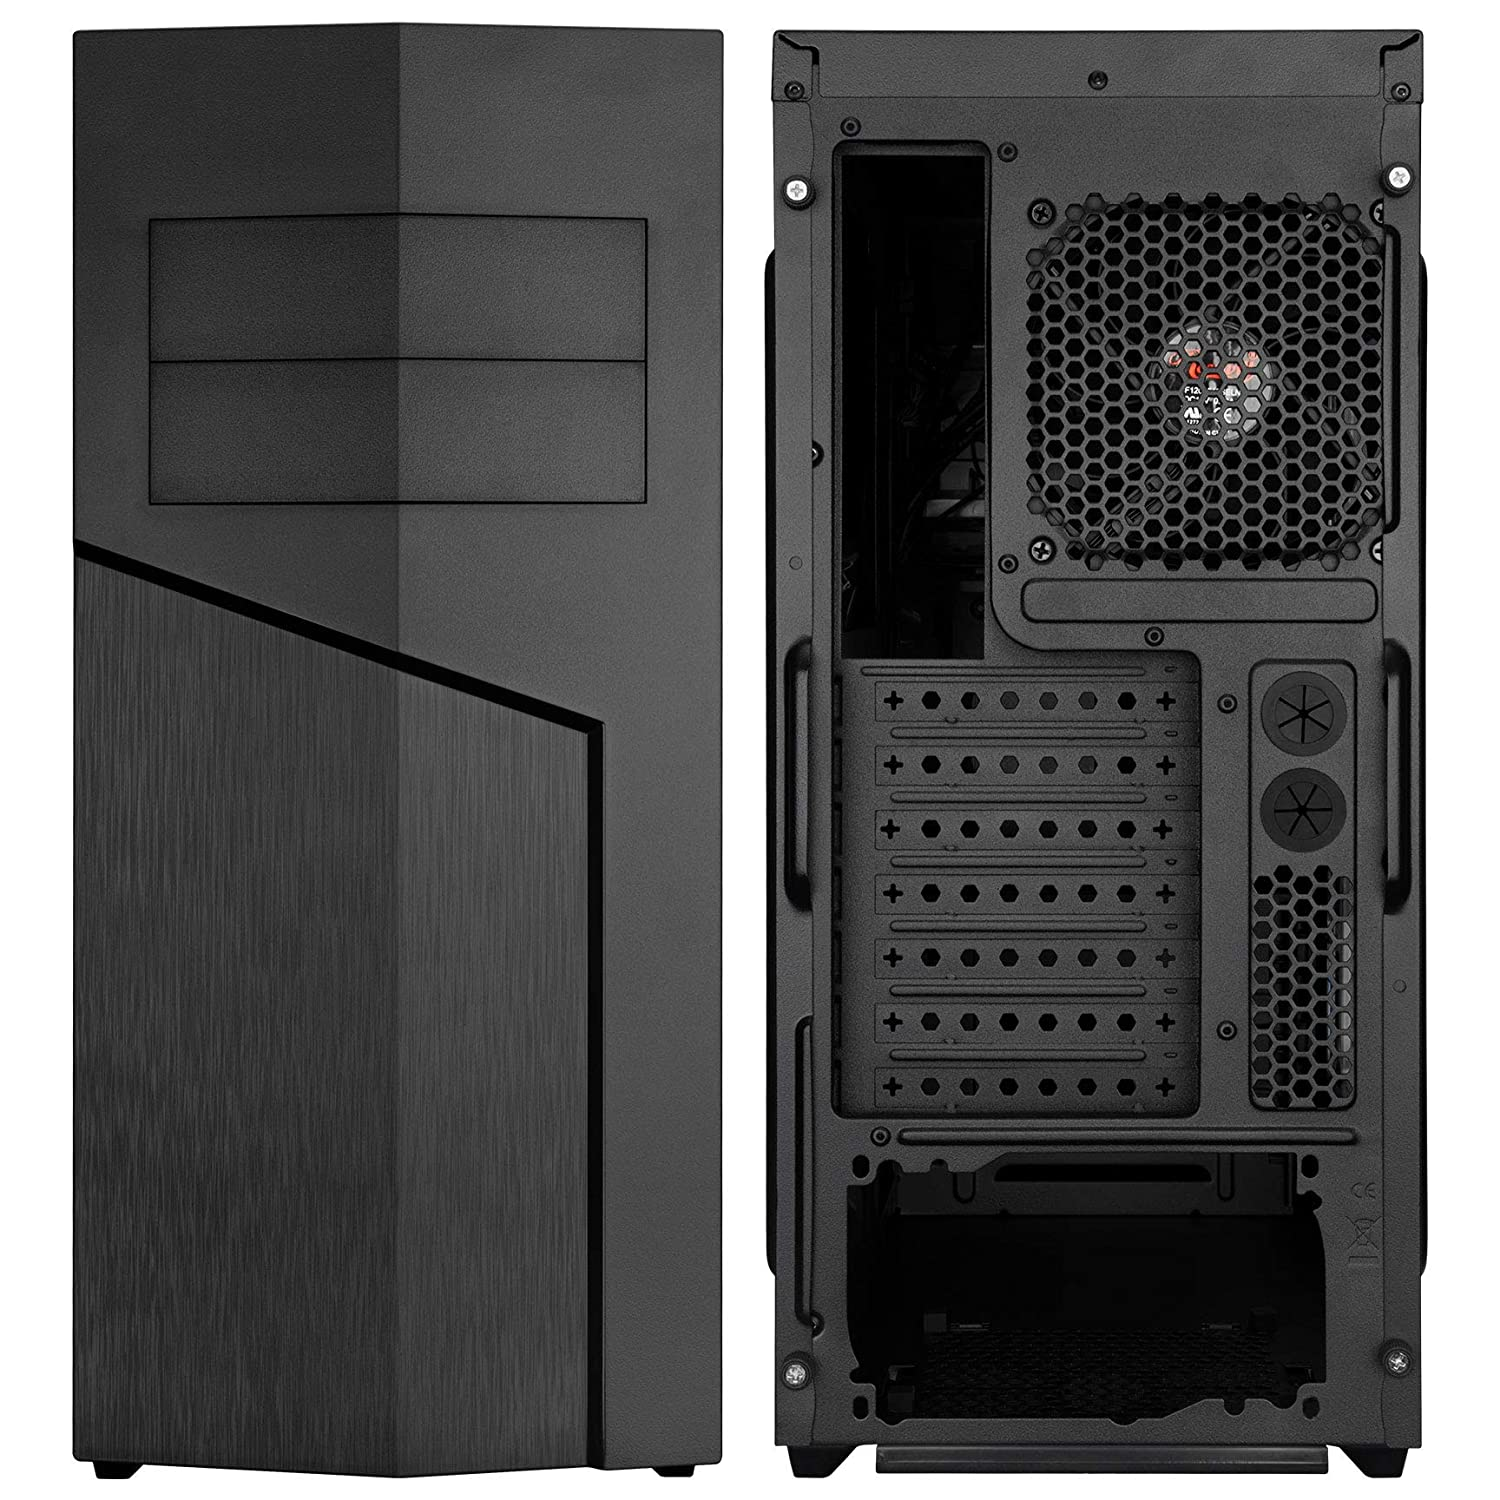 Supports up to 400 mm Long VGA Card Rosewill ATX Mid Tower Gaming Computer Case